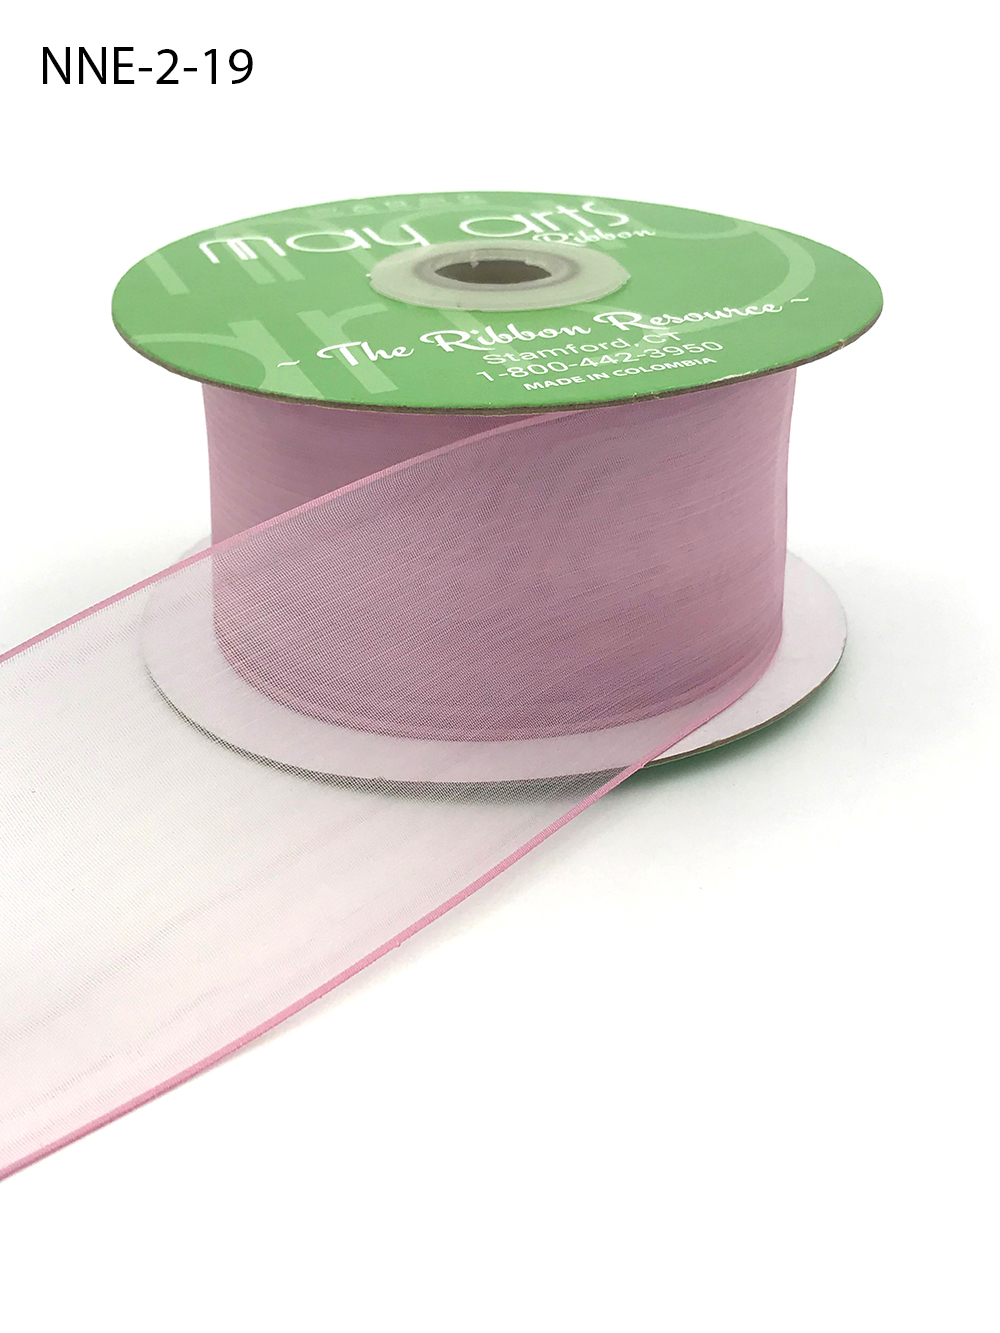 2 Inch Flat Soft Sheer Ribbon with Thin Solid Woven Edge - NNE-2-19 MAUVE